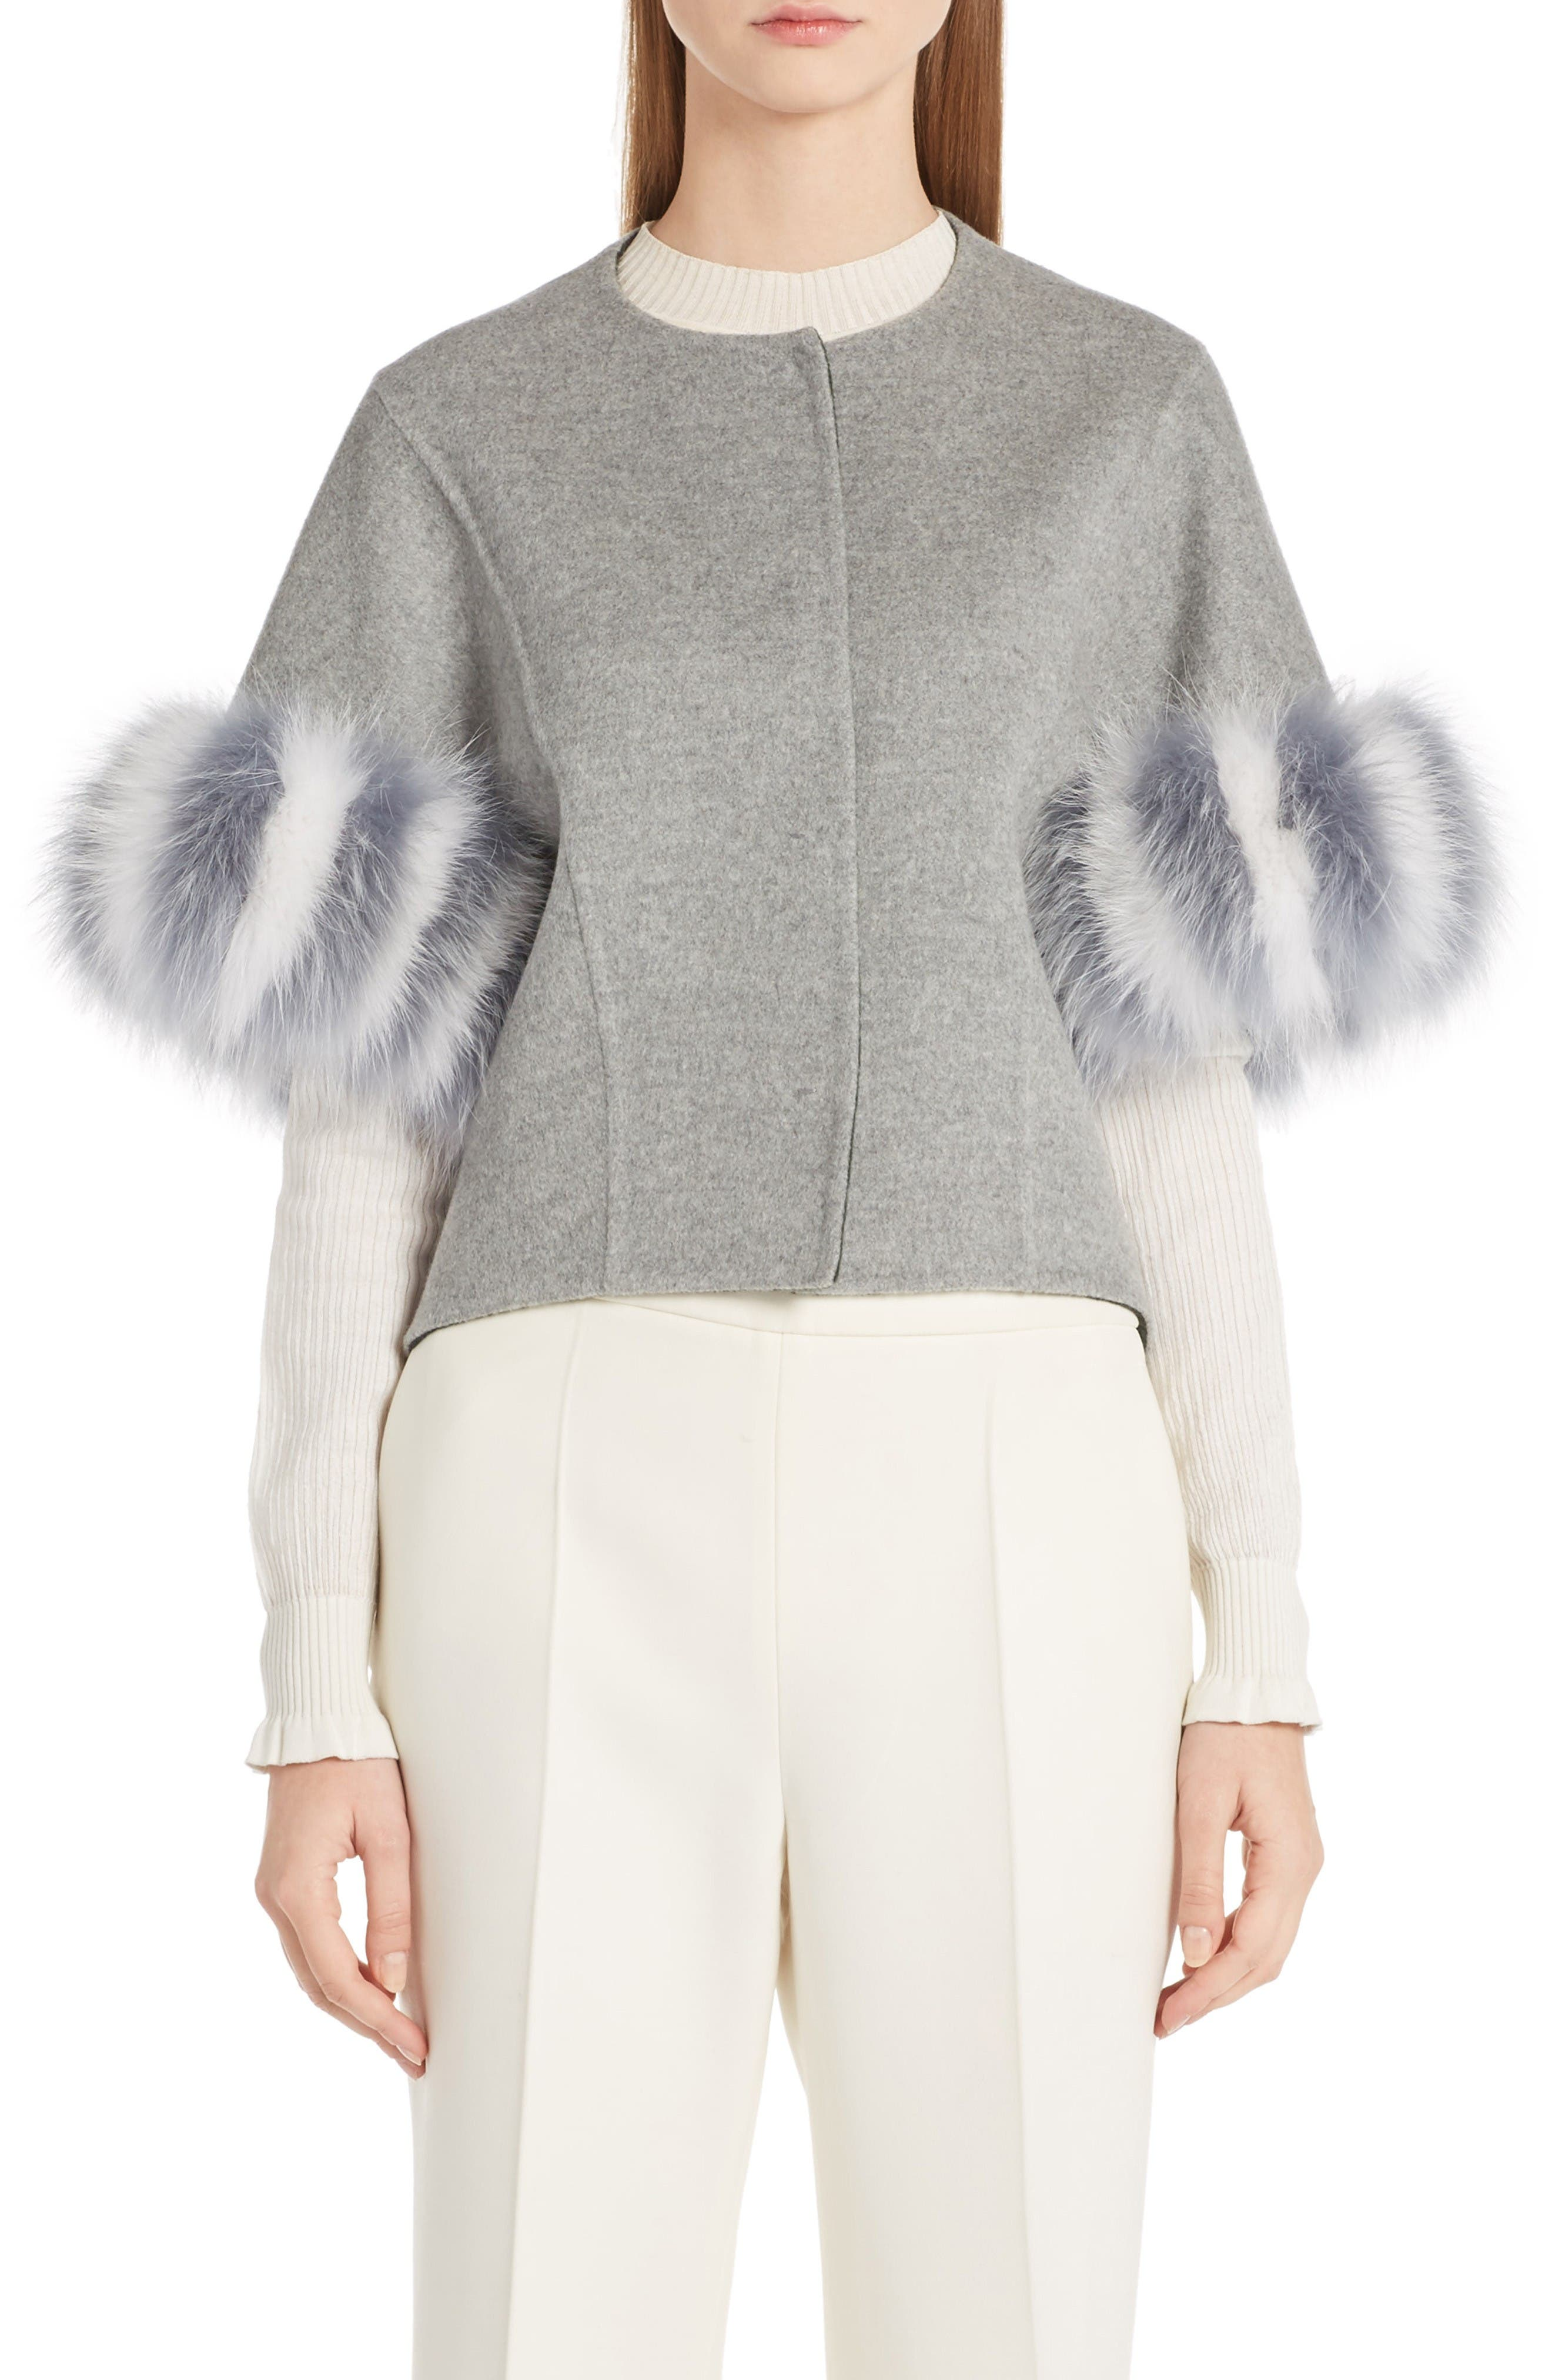 Fendi Cashmere & Genuine Fox Fur Jacket